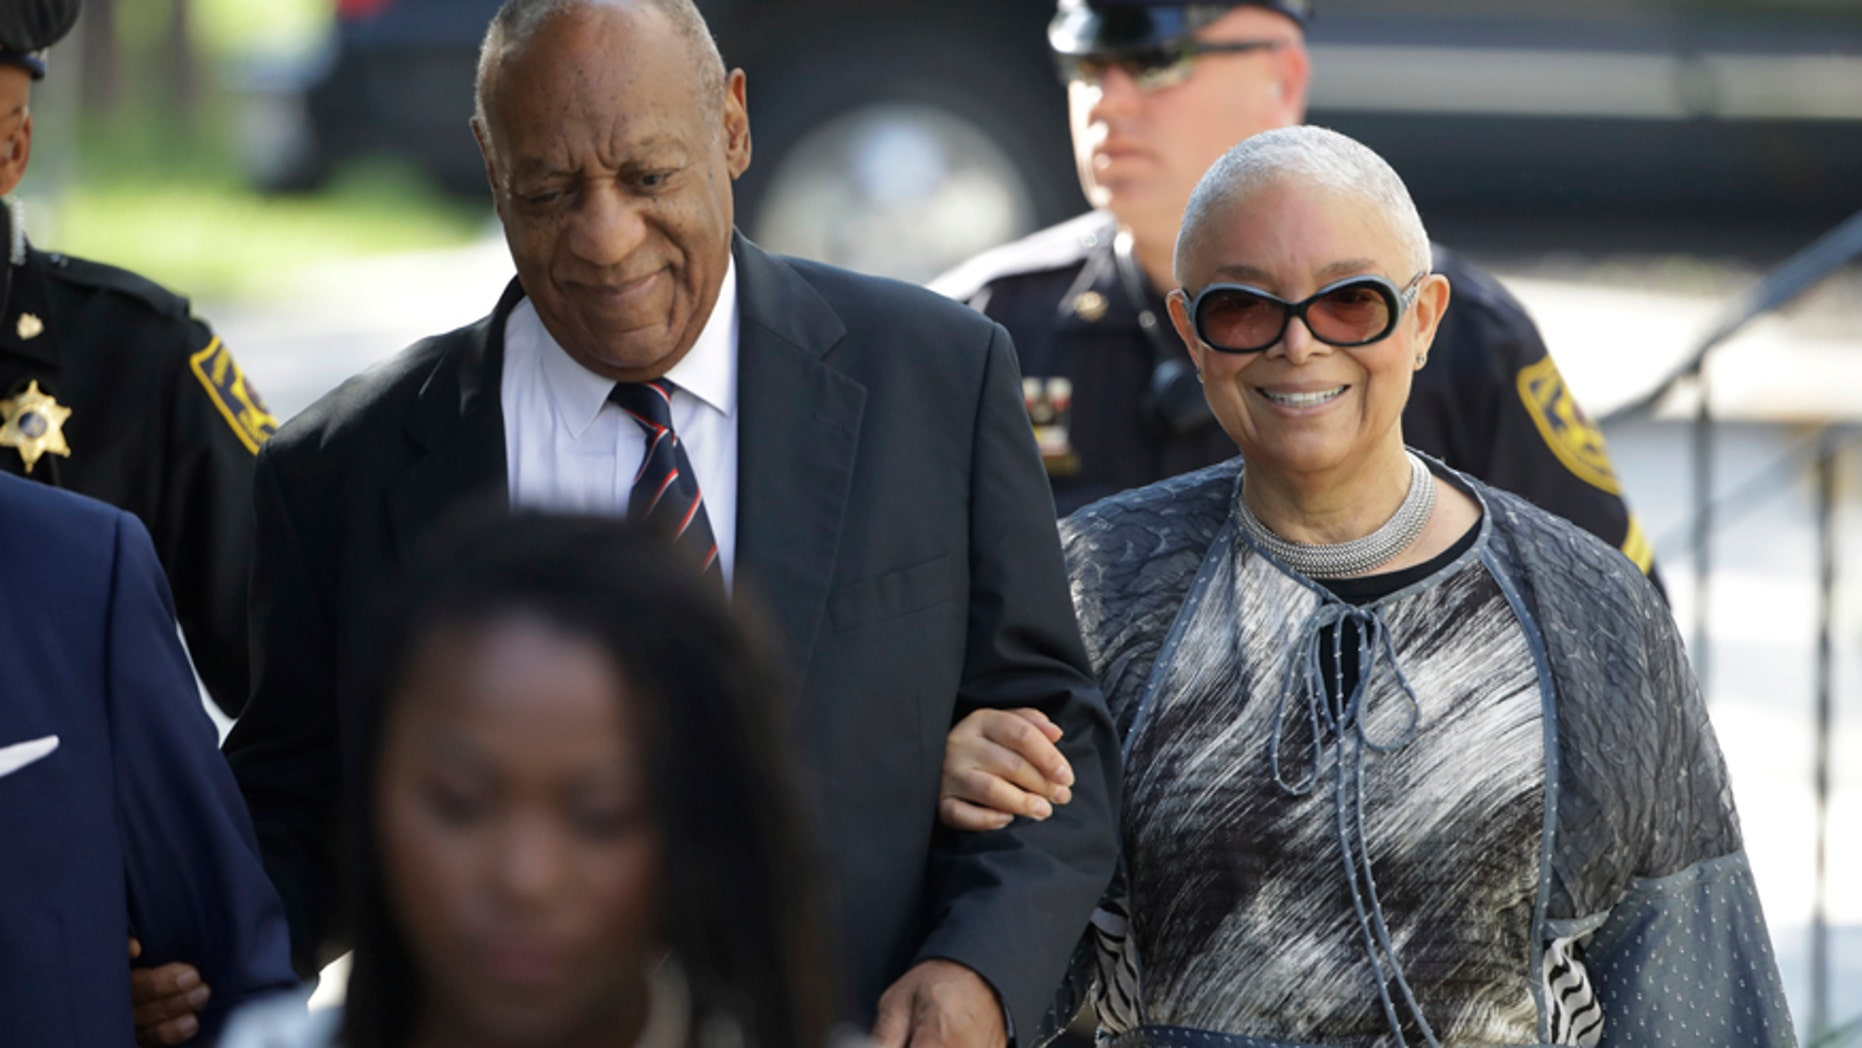 Bill Cosby arrives for his sexual assault trial with his wife Camille Cosby, right, at the Montgomery County Courthouse in Norristown, Pa., Monday, June 12, 2017.